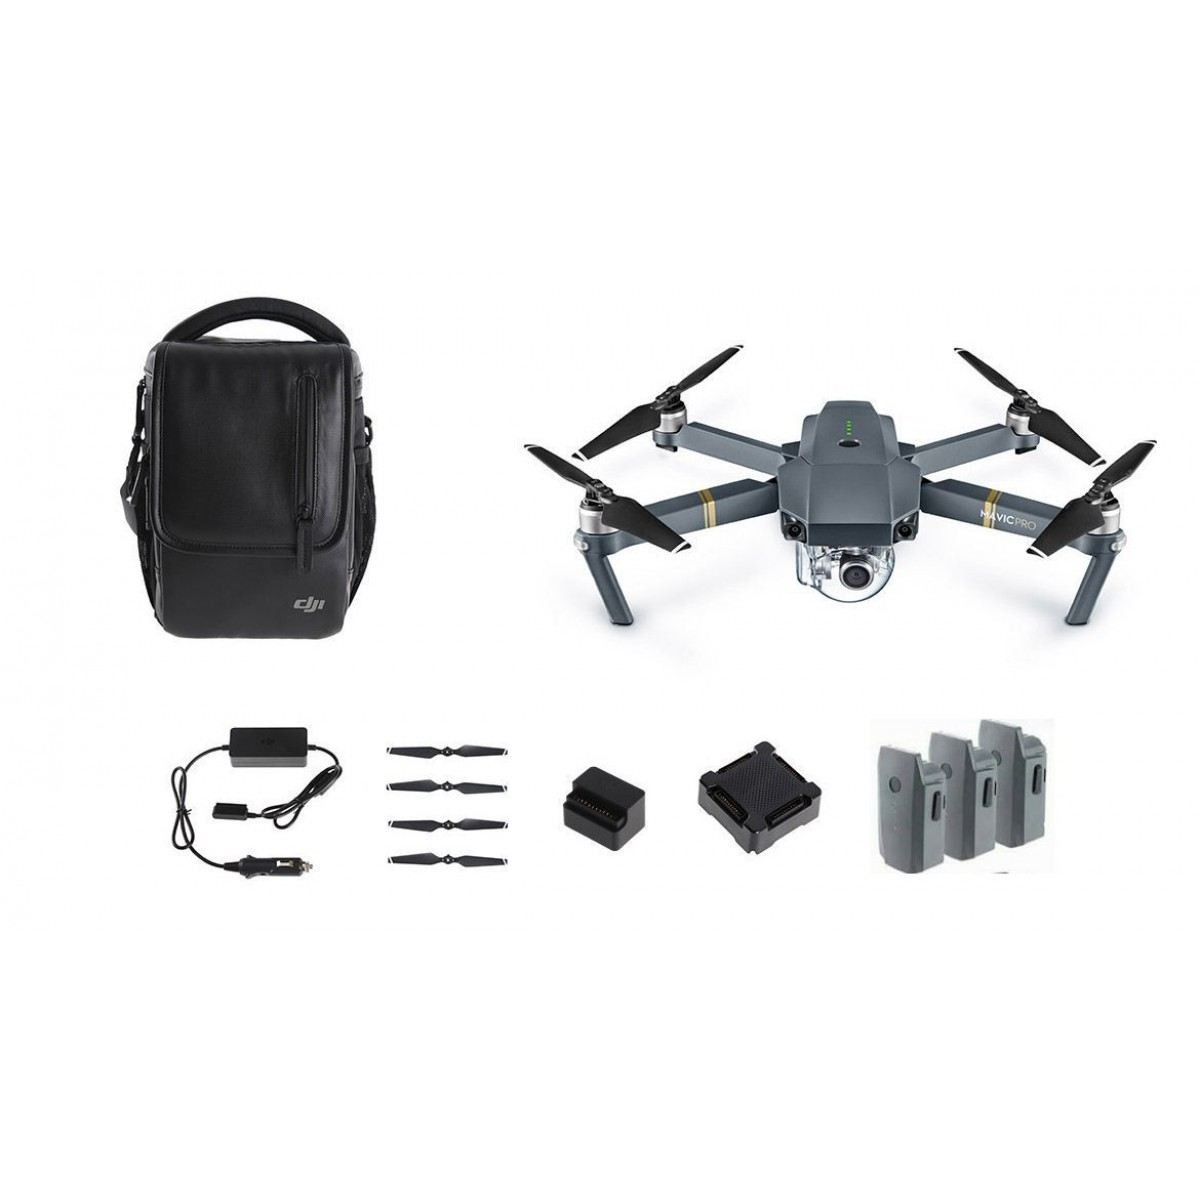 7a5483fef84 Mavic Pro Fly more Combo (Official DJI Malaysia Warranty)